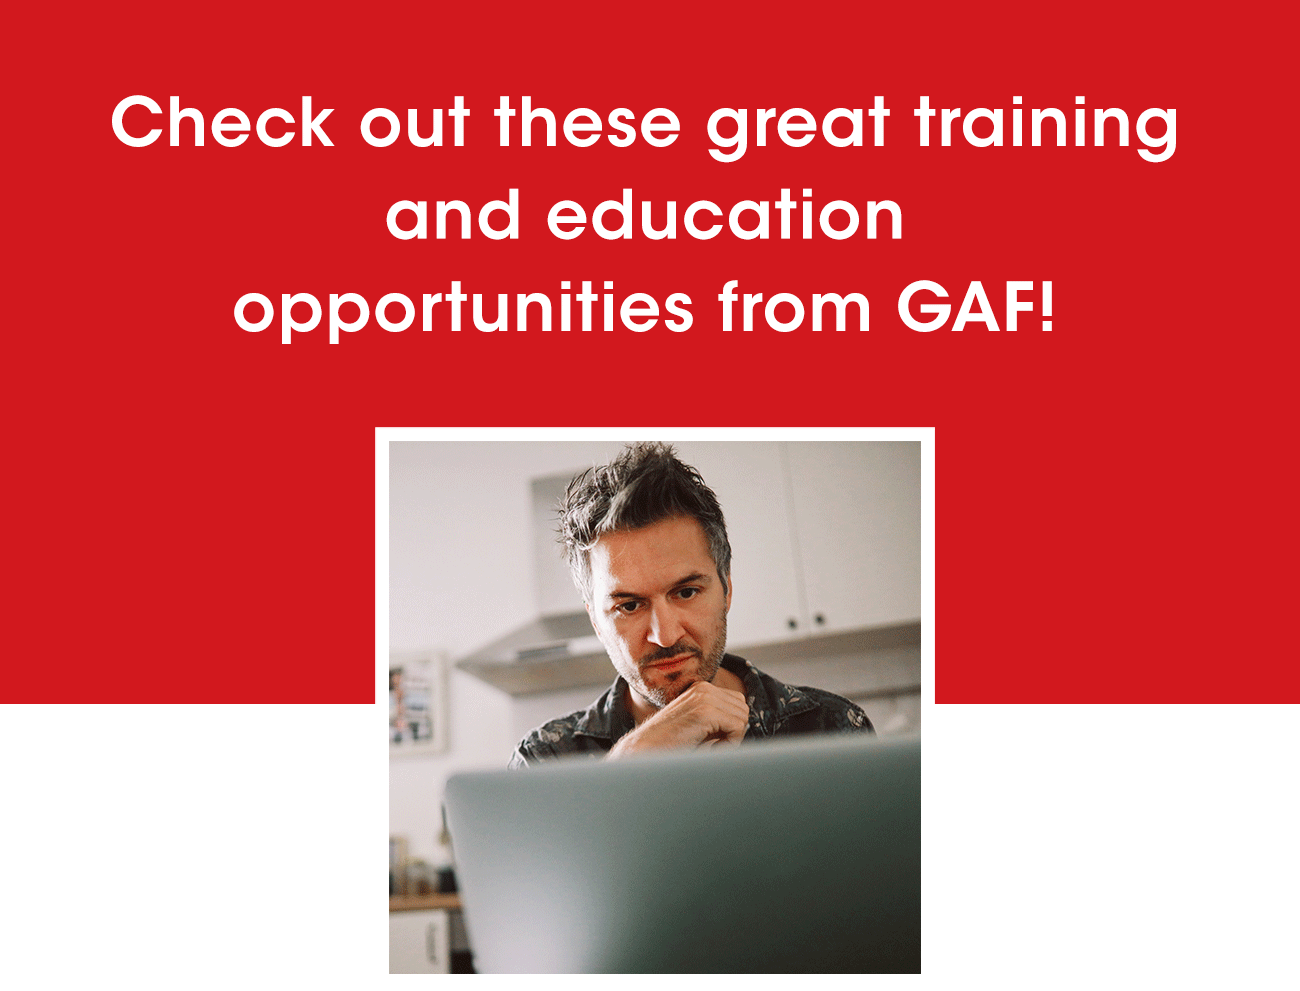 Check out these great training and education opportunities from GAF!